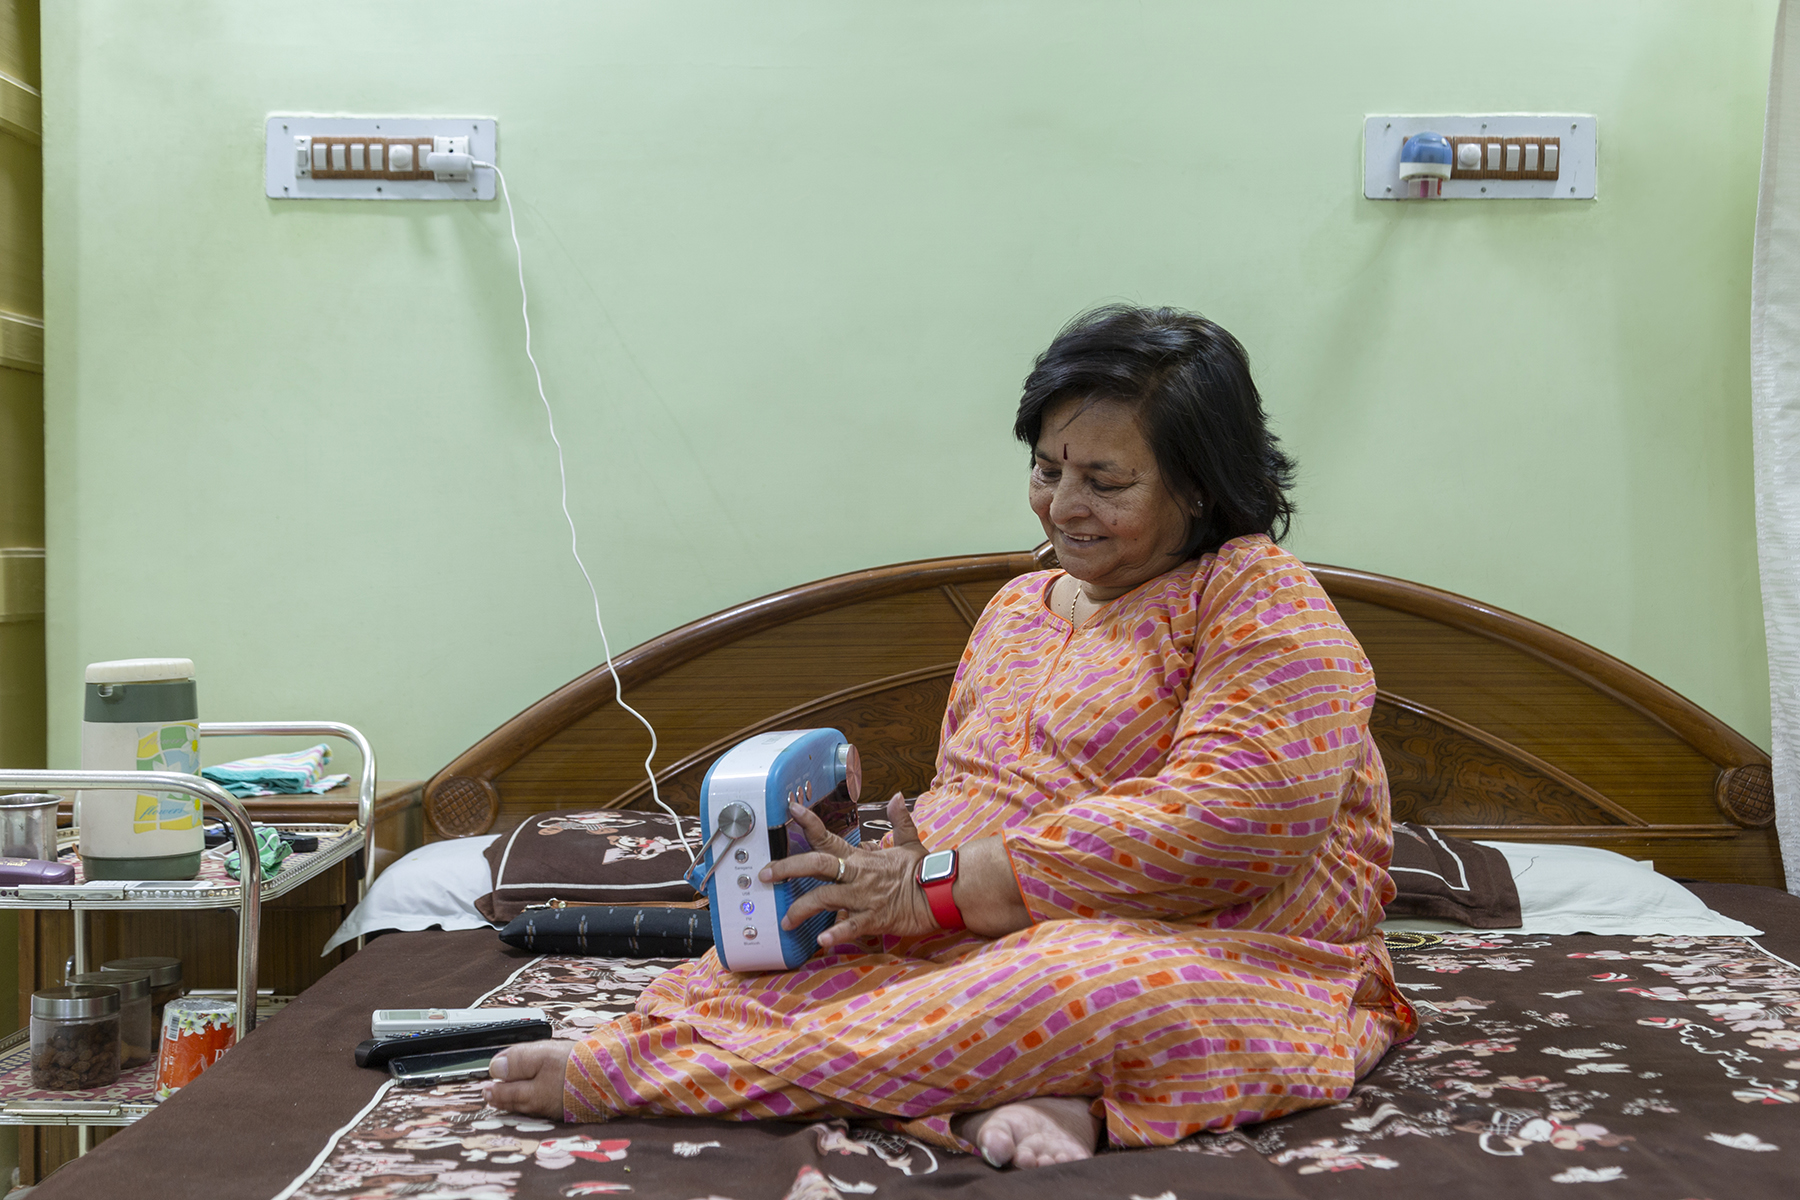 Kusumlata wearing a salwar-kameez with a pale multi-colour pattern sits crosslegged on her bed with a blue Saregama Carvaan (portable digital music player) on her lap. She is smiling as she pushes a button on the player, which has a long white wire that is plugged into a socket of an electrical switchboard on the wall.